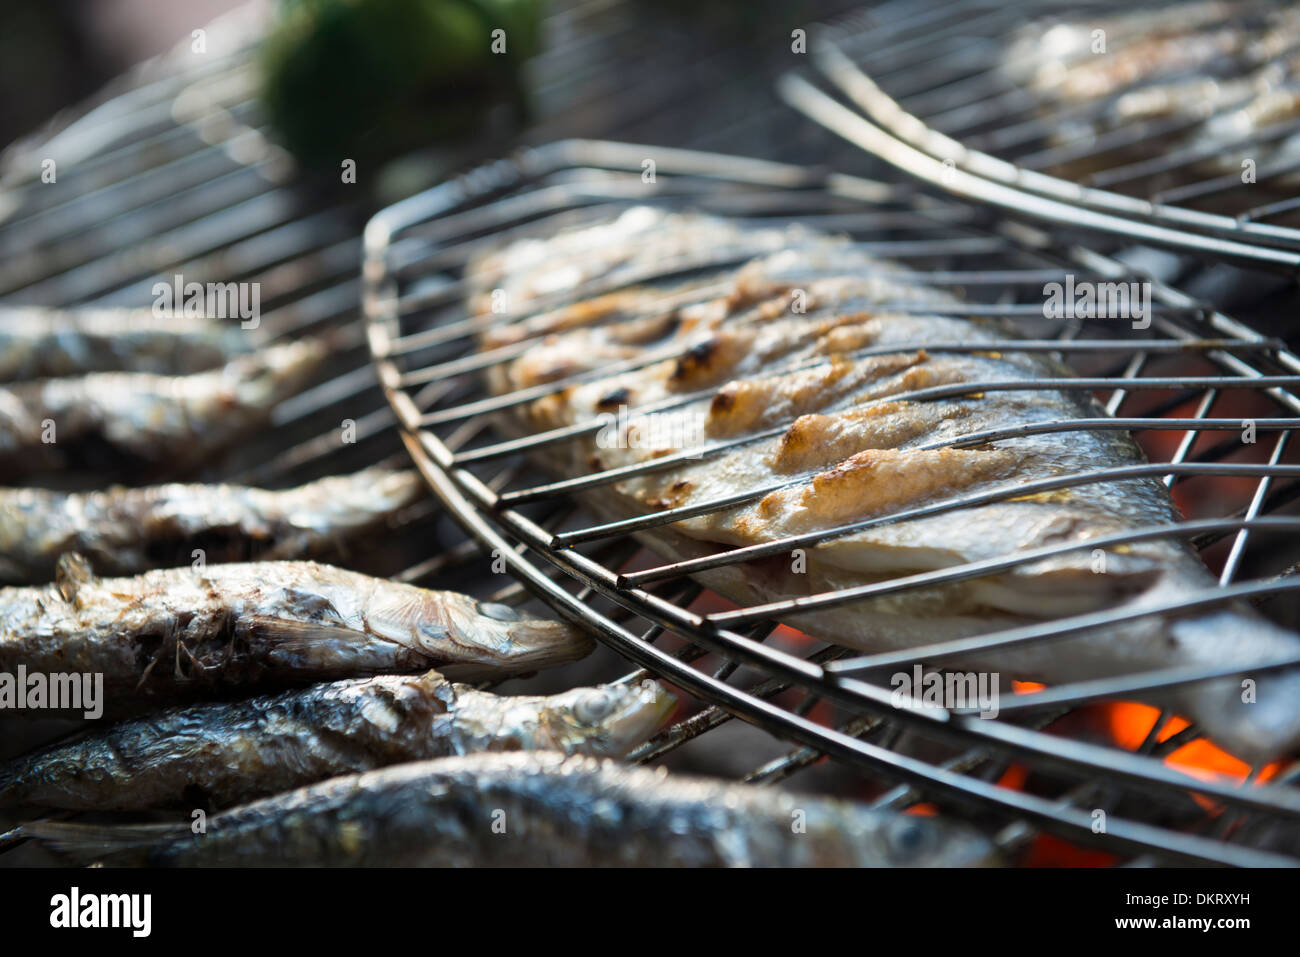 A healhty mediterranean BBQ consisting of fresh fish and vegetables - Stock Image